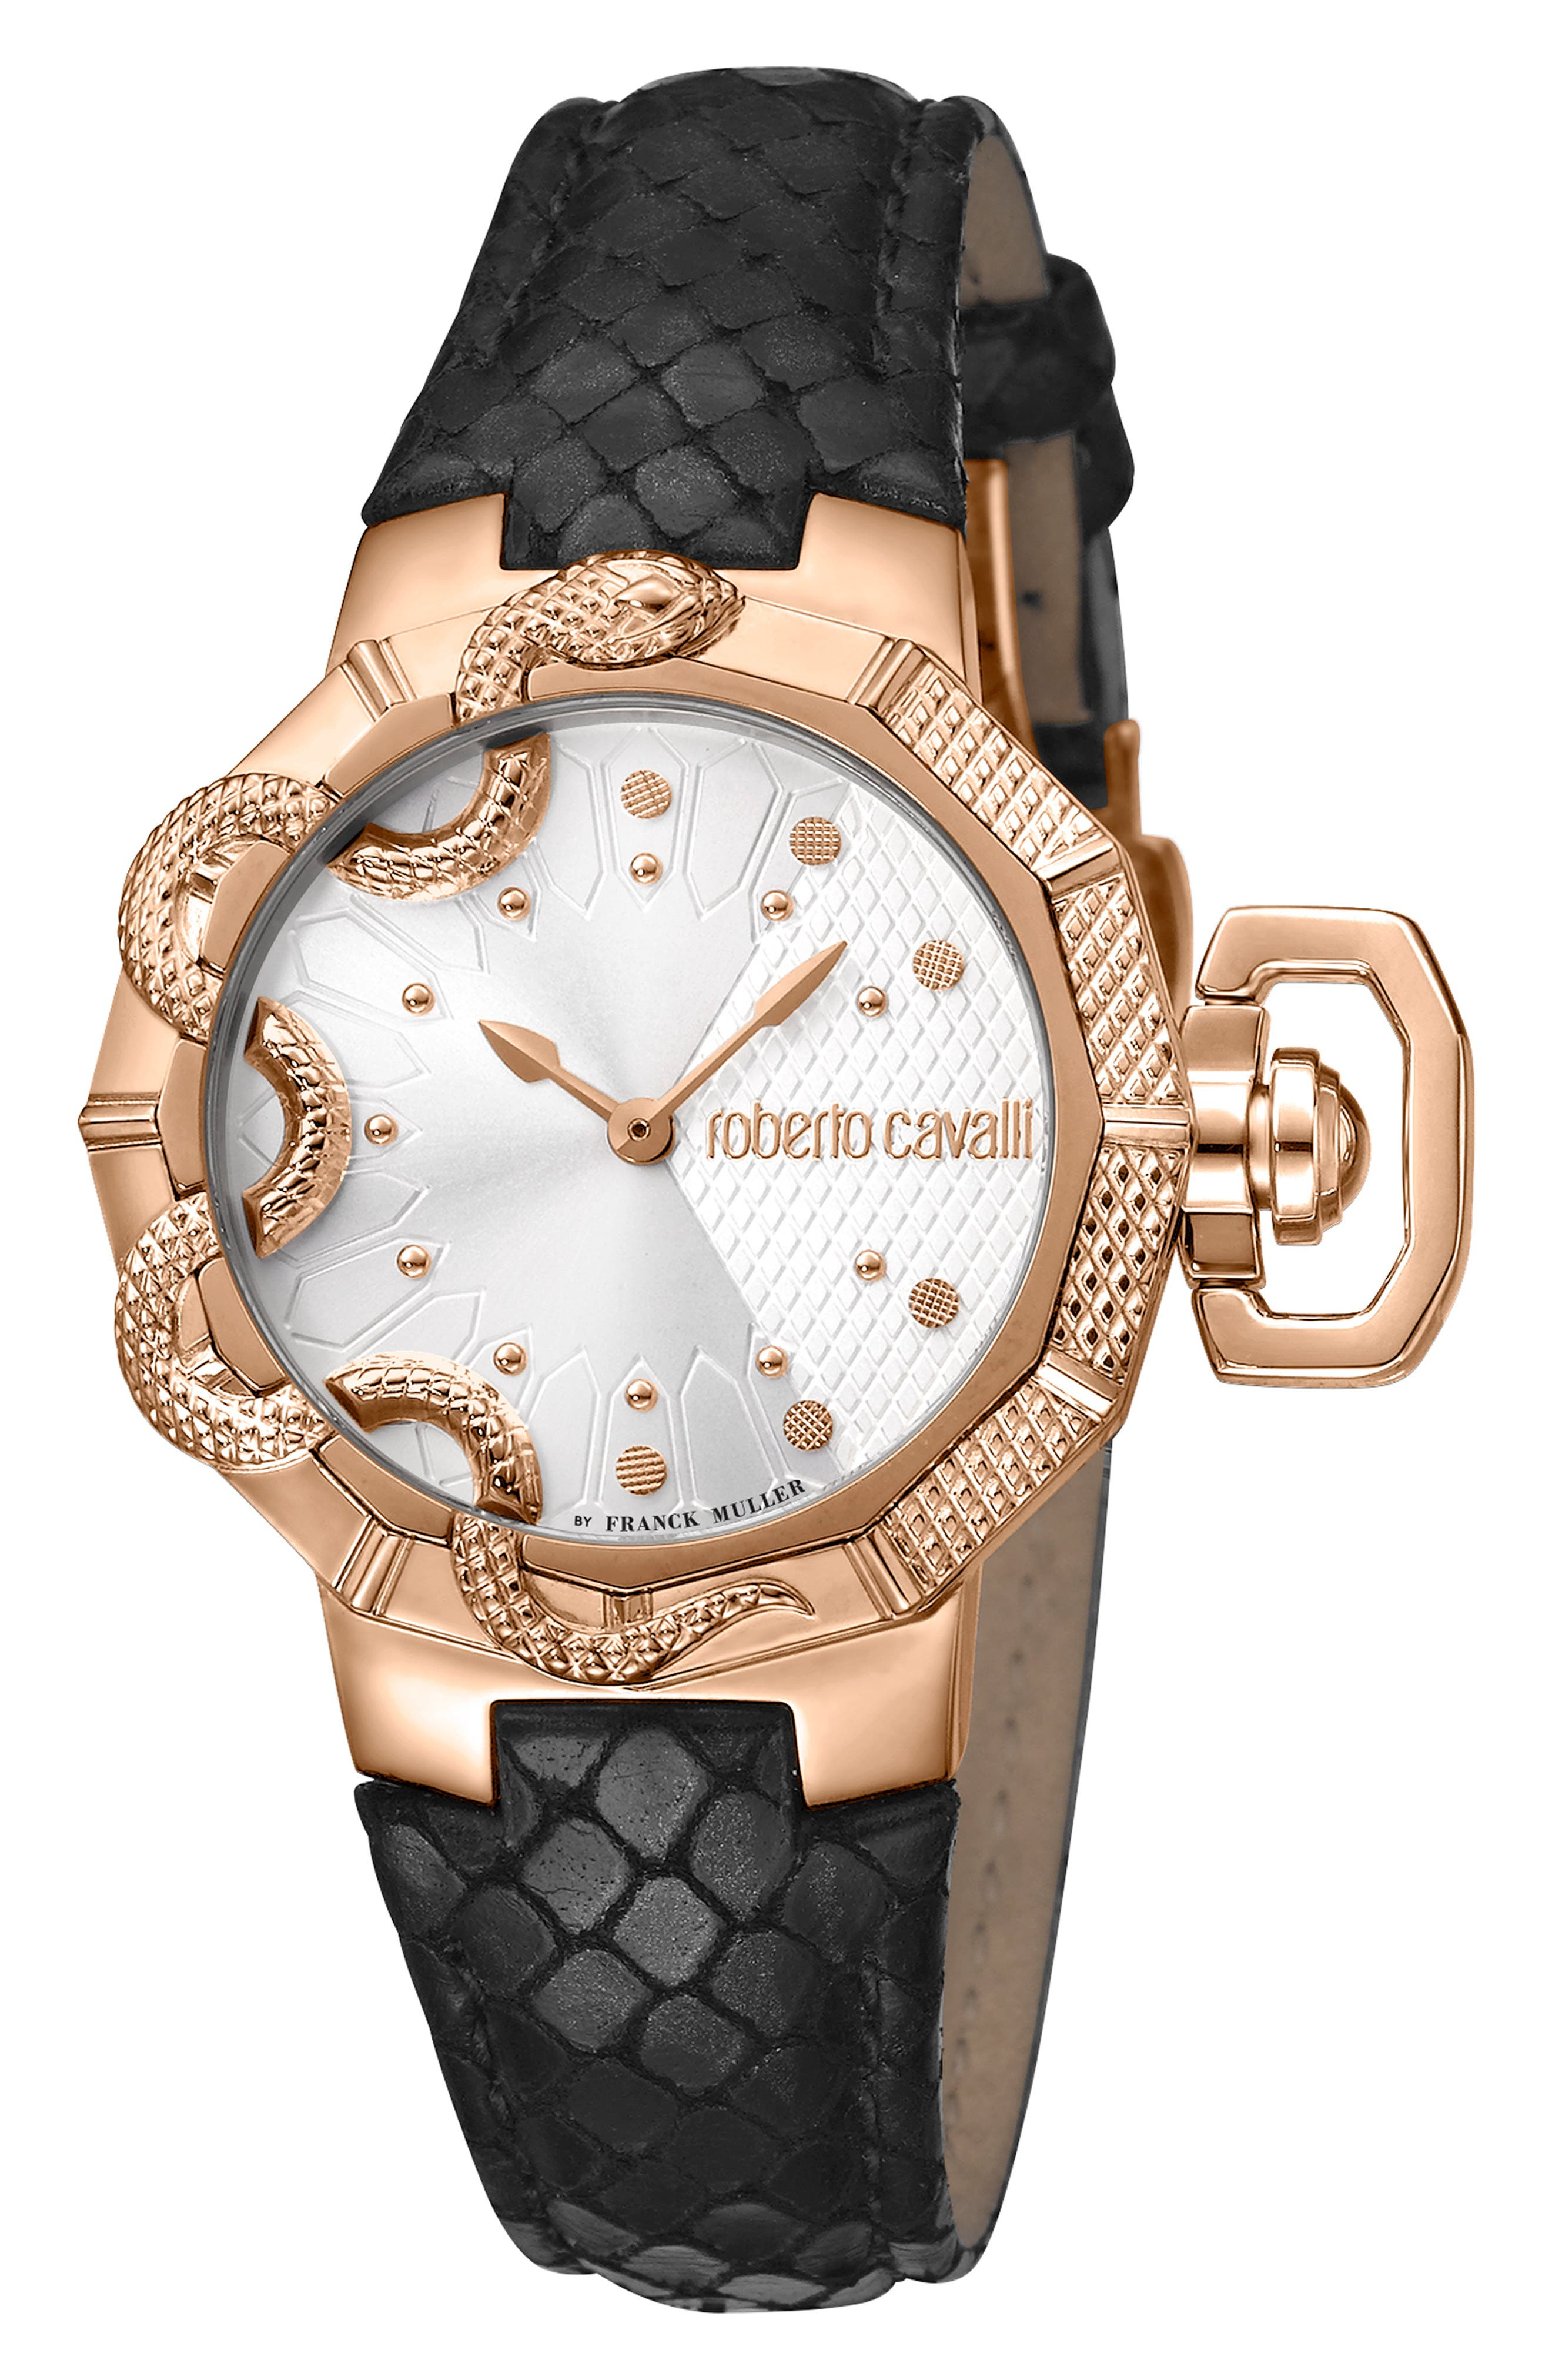 ROBERTO CAVALLI BY FRANCK MULLER Serpente Geometrico Leather Strap Watch, 34Mm in Black/ Silver / Rose Gold